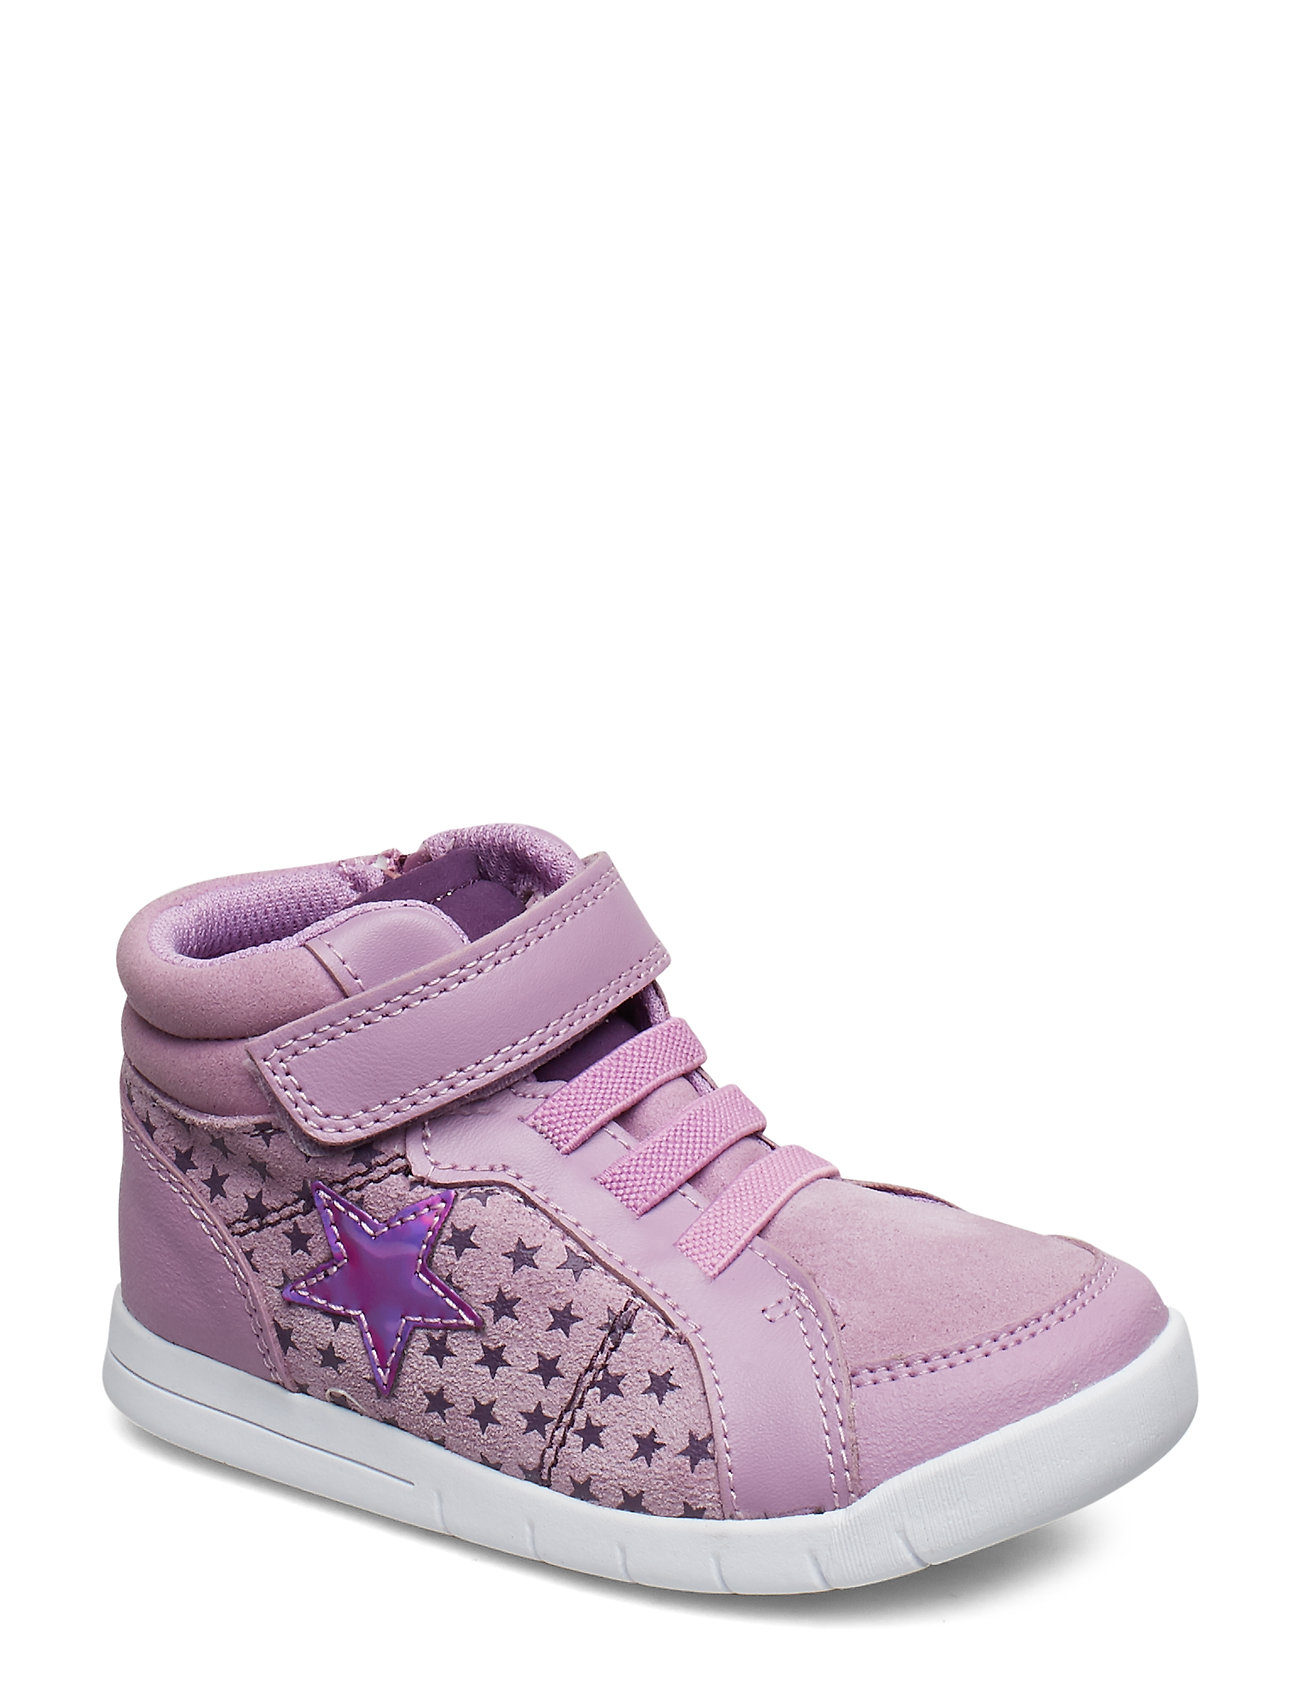 Clarks Emery Beat T - LAVENDER SUEDE